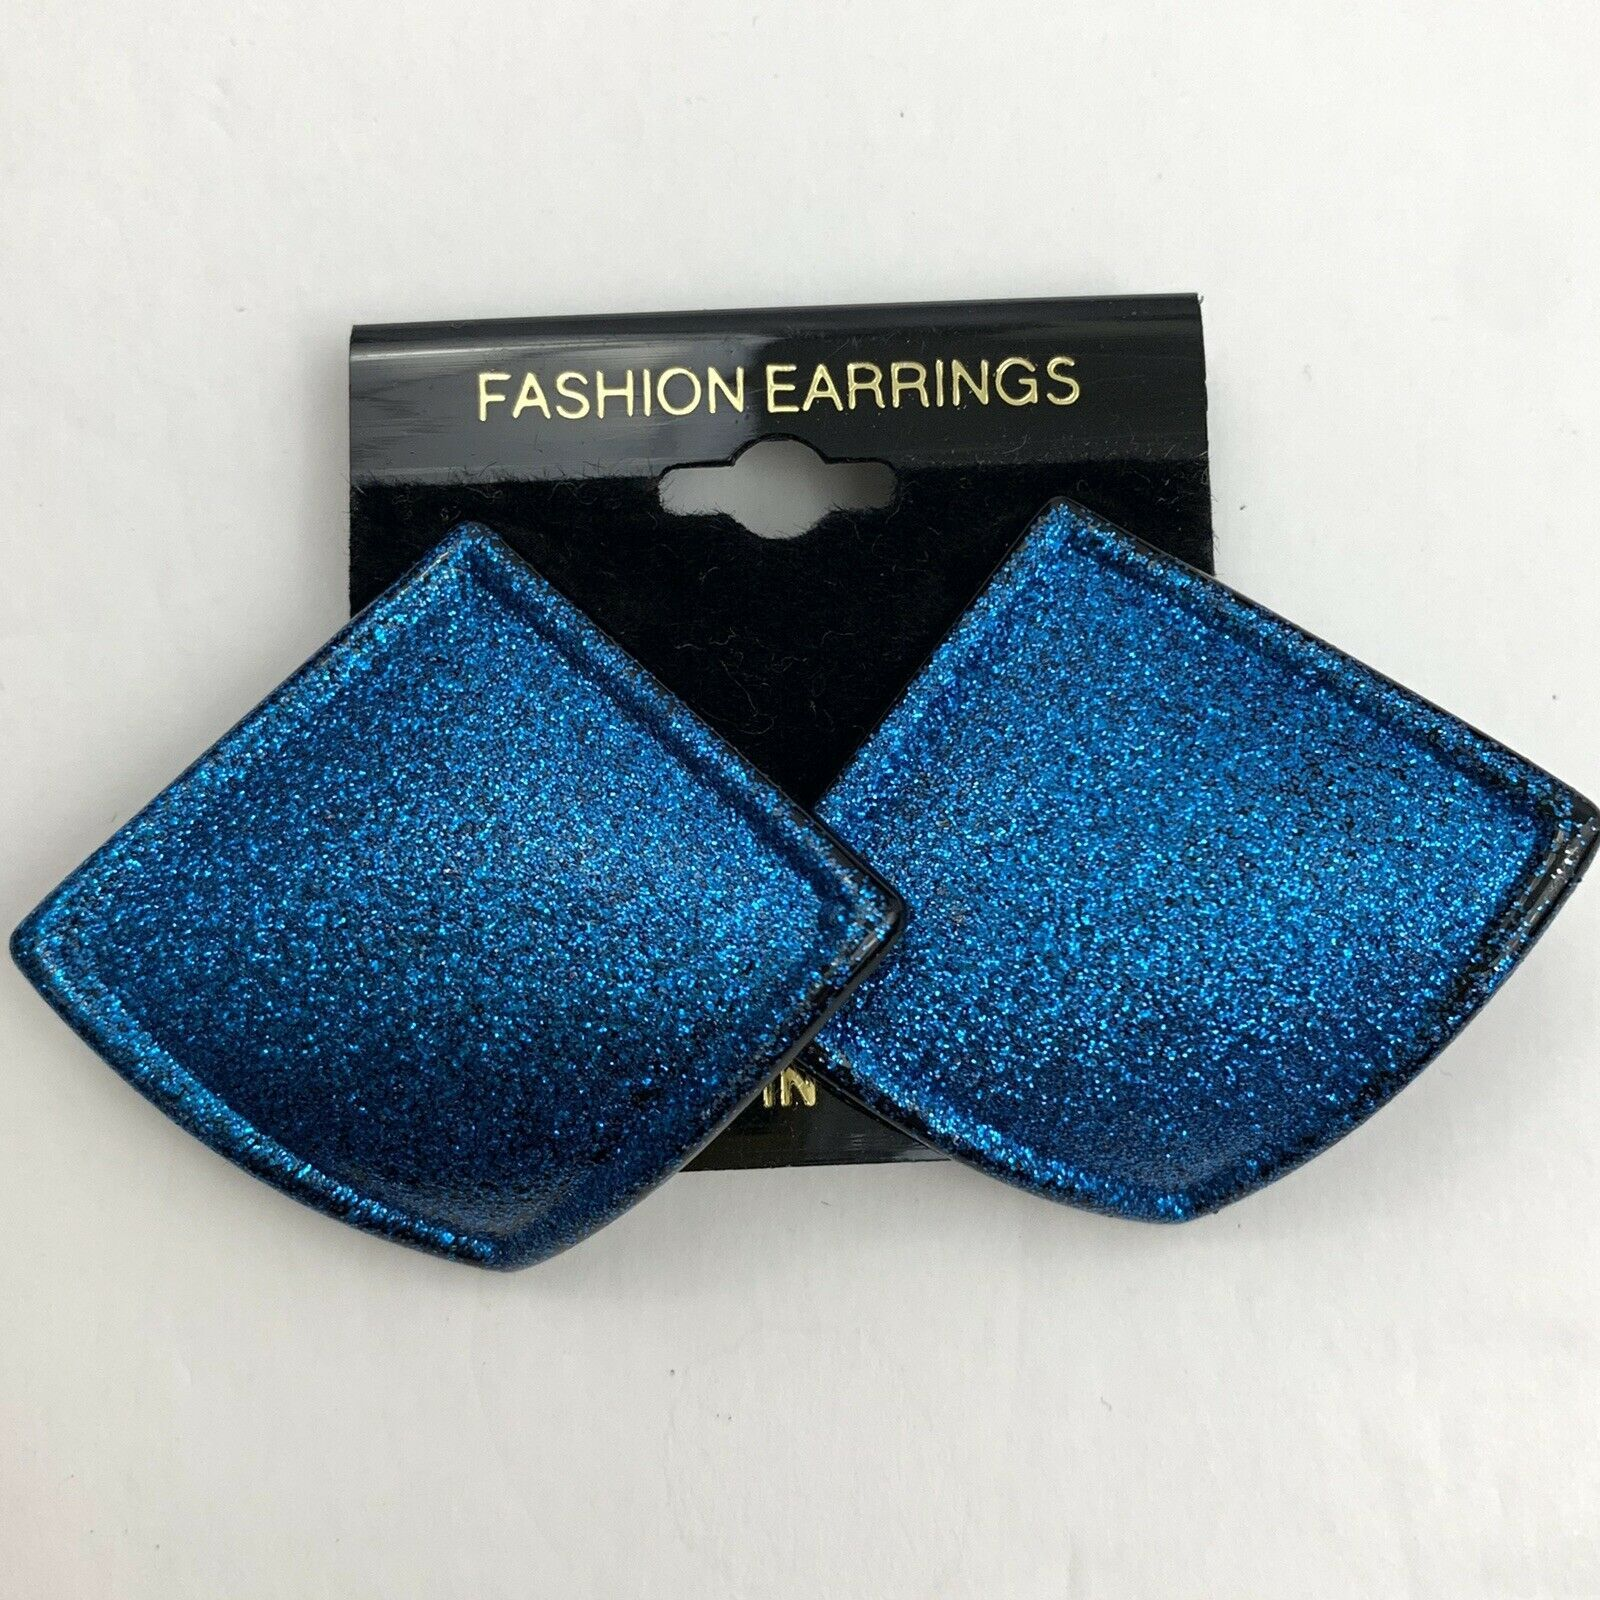 Primary image for Vintage Blue Glitter Earrings Pierced Shiny Glittery Funky Statement NOS 80s 90s